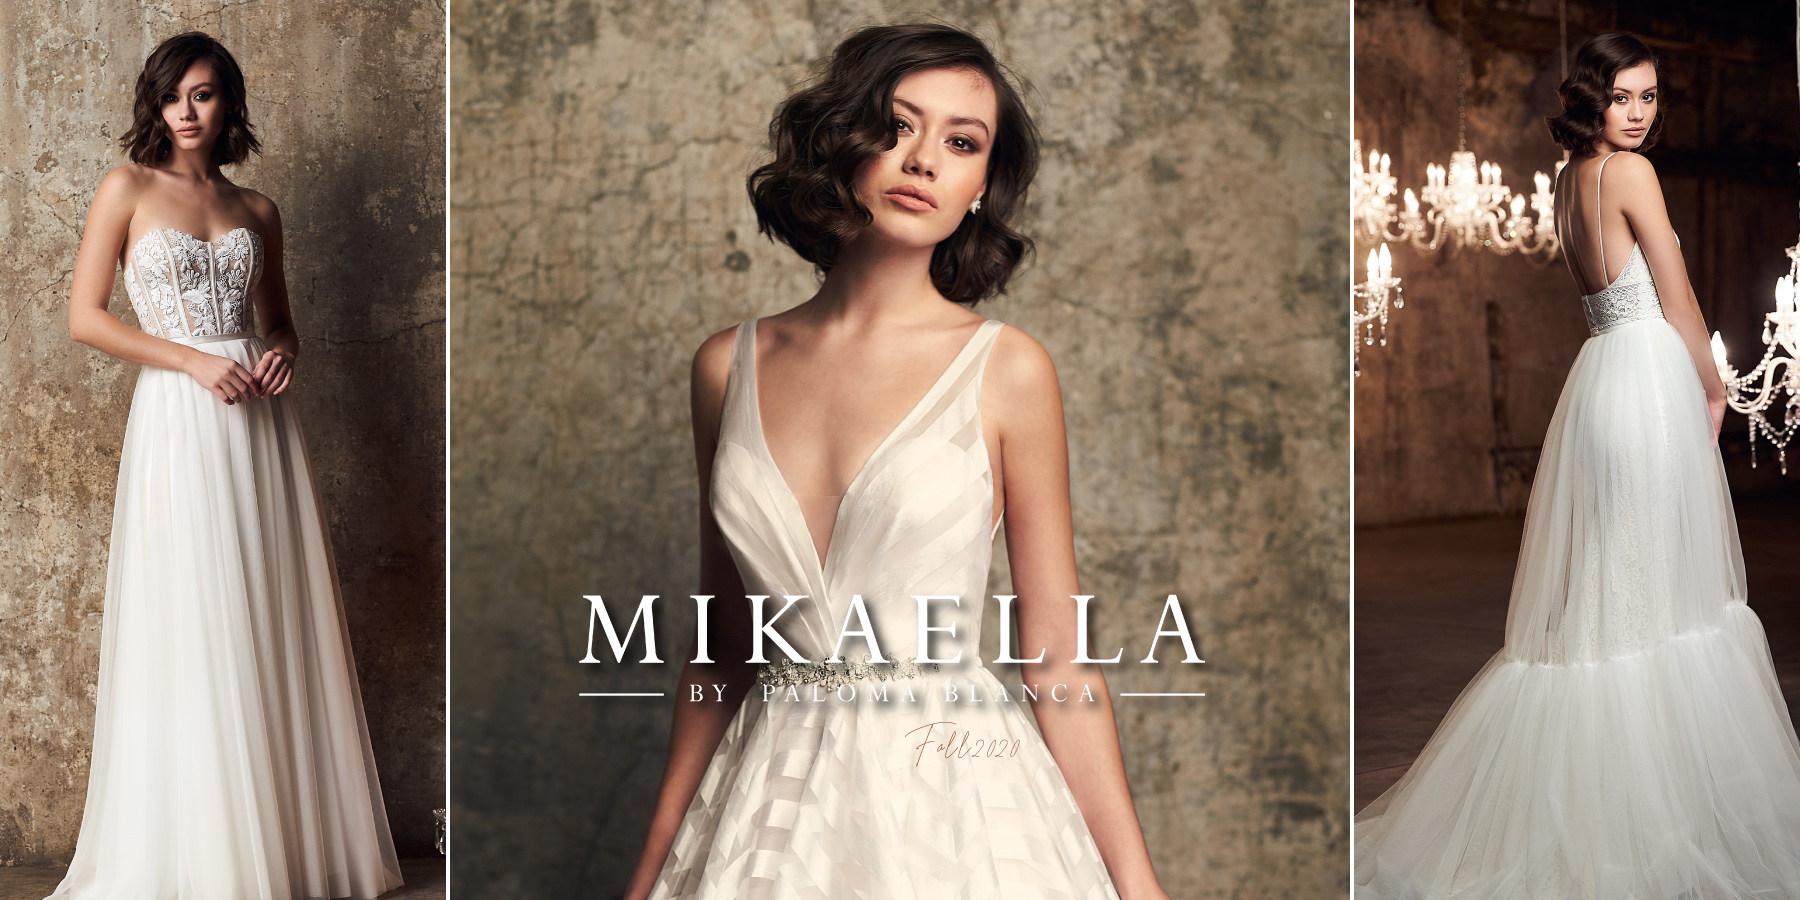 Mikaella Wedding Dresses In The Us Canada The Dressfinder,Formal Dresses For Wedding South Africa